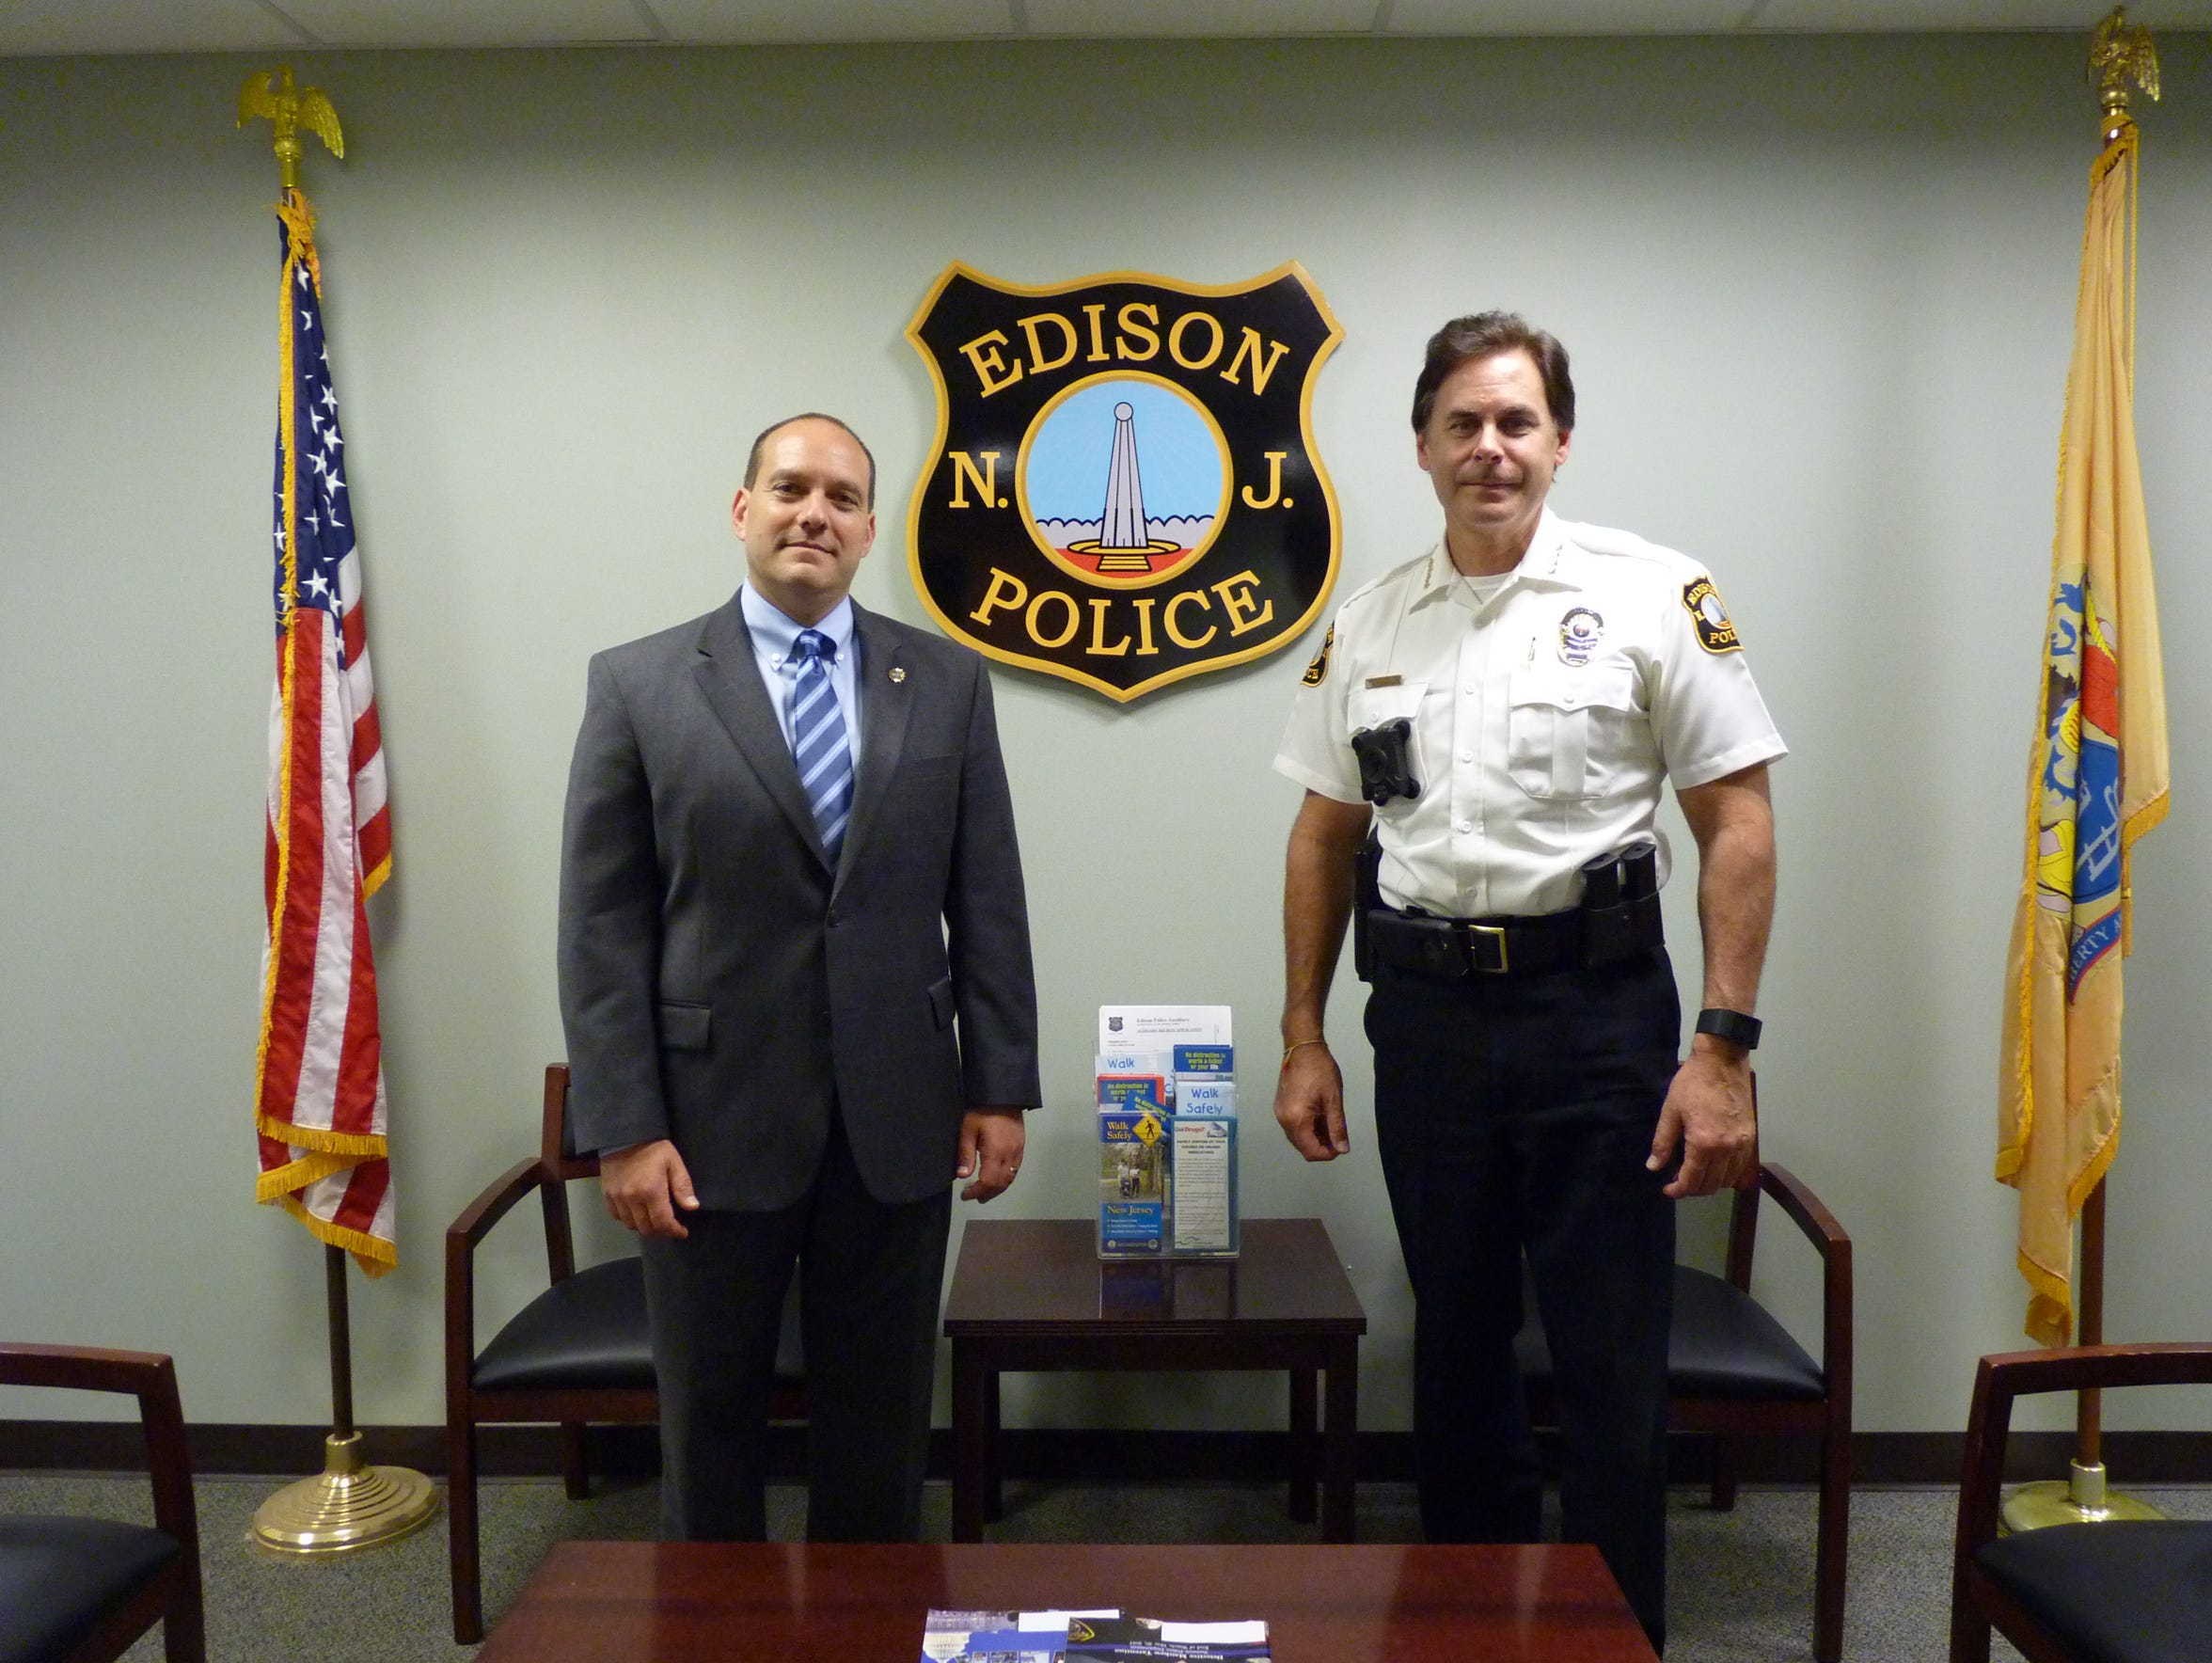 Middlesex County Prosecutor Andrew Carey and Edison